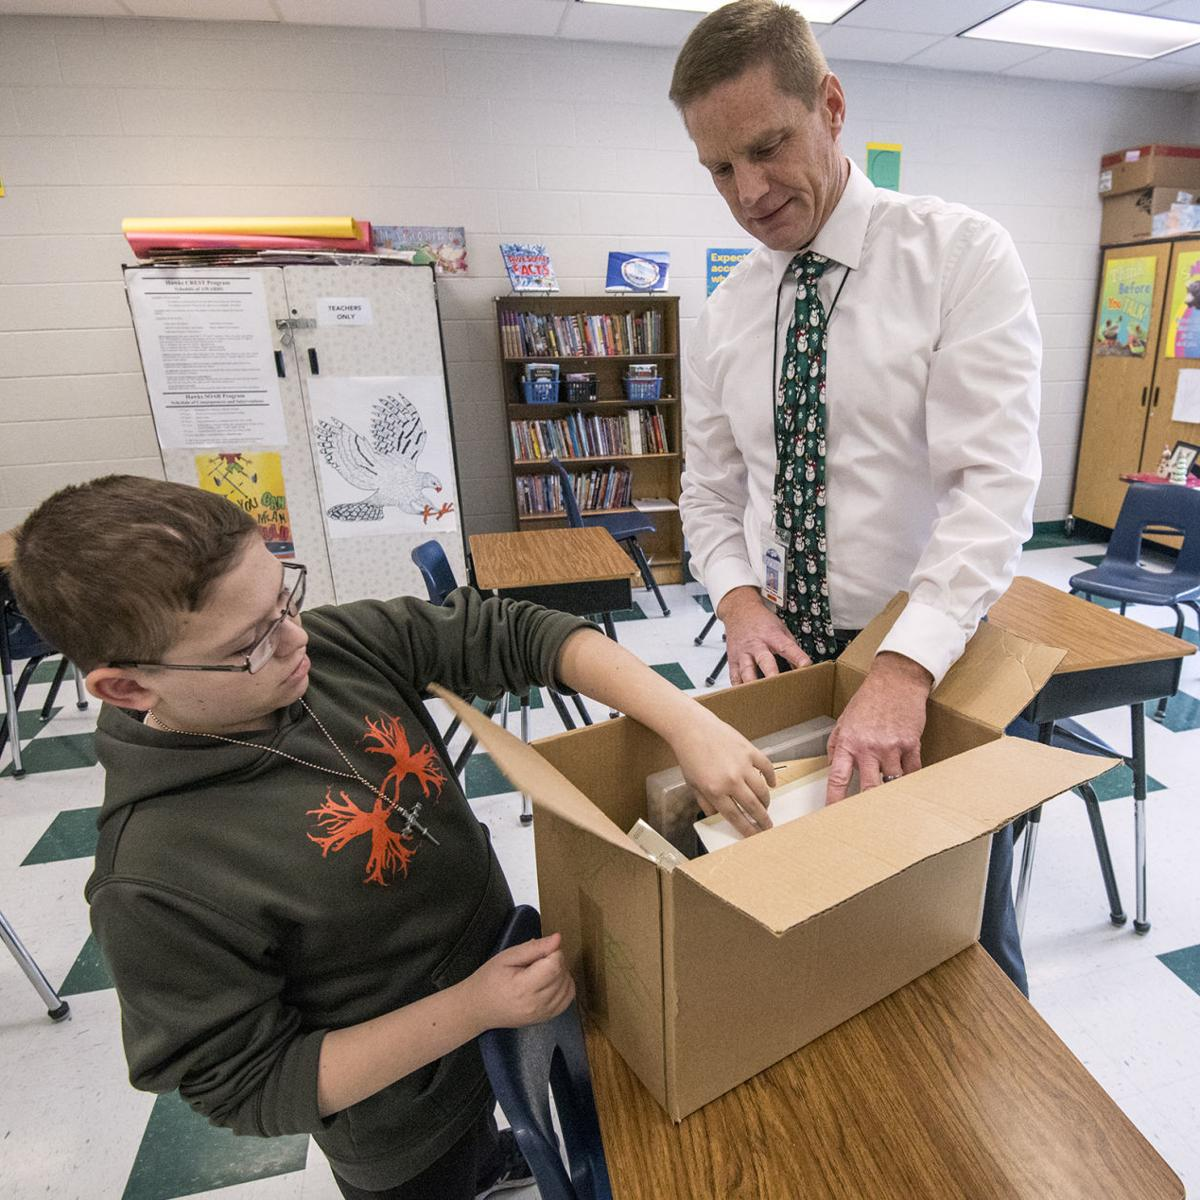 Veterans Affairs — Family's Military Service Inspires School Project